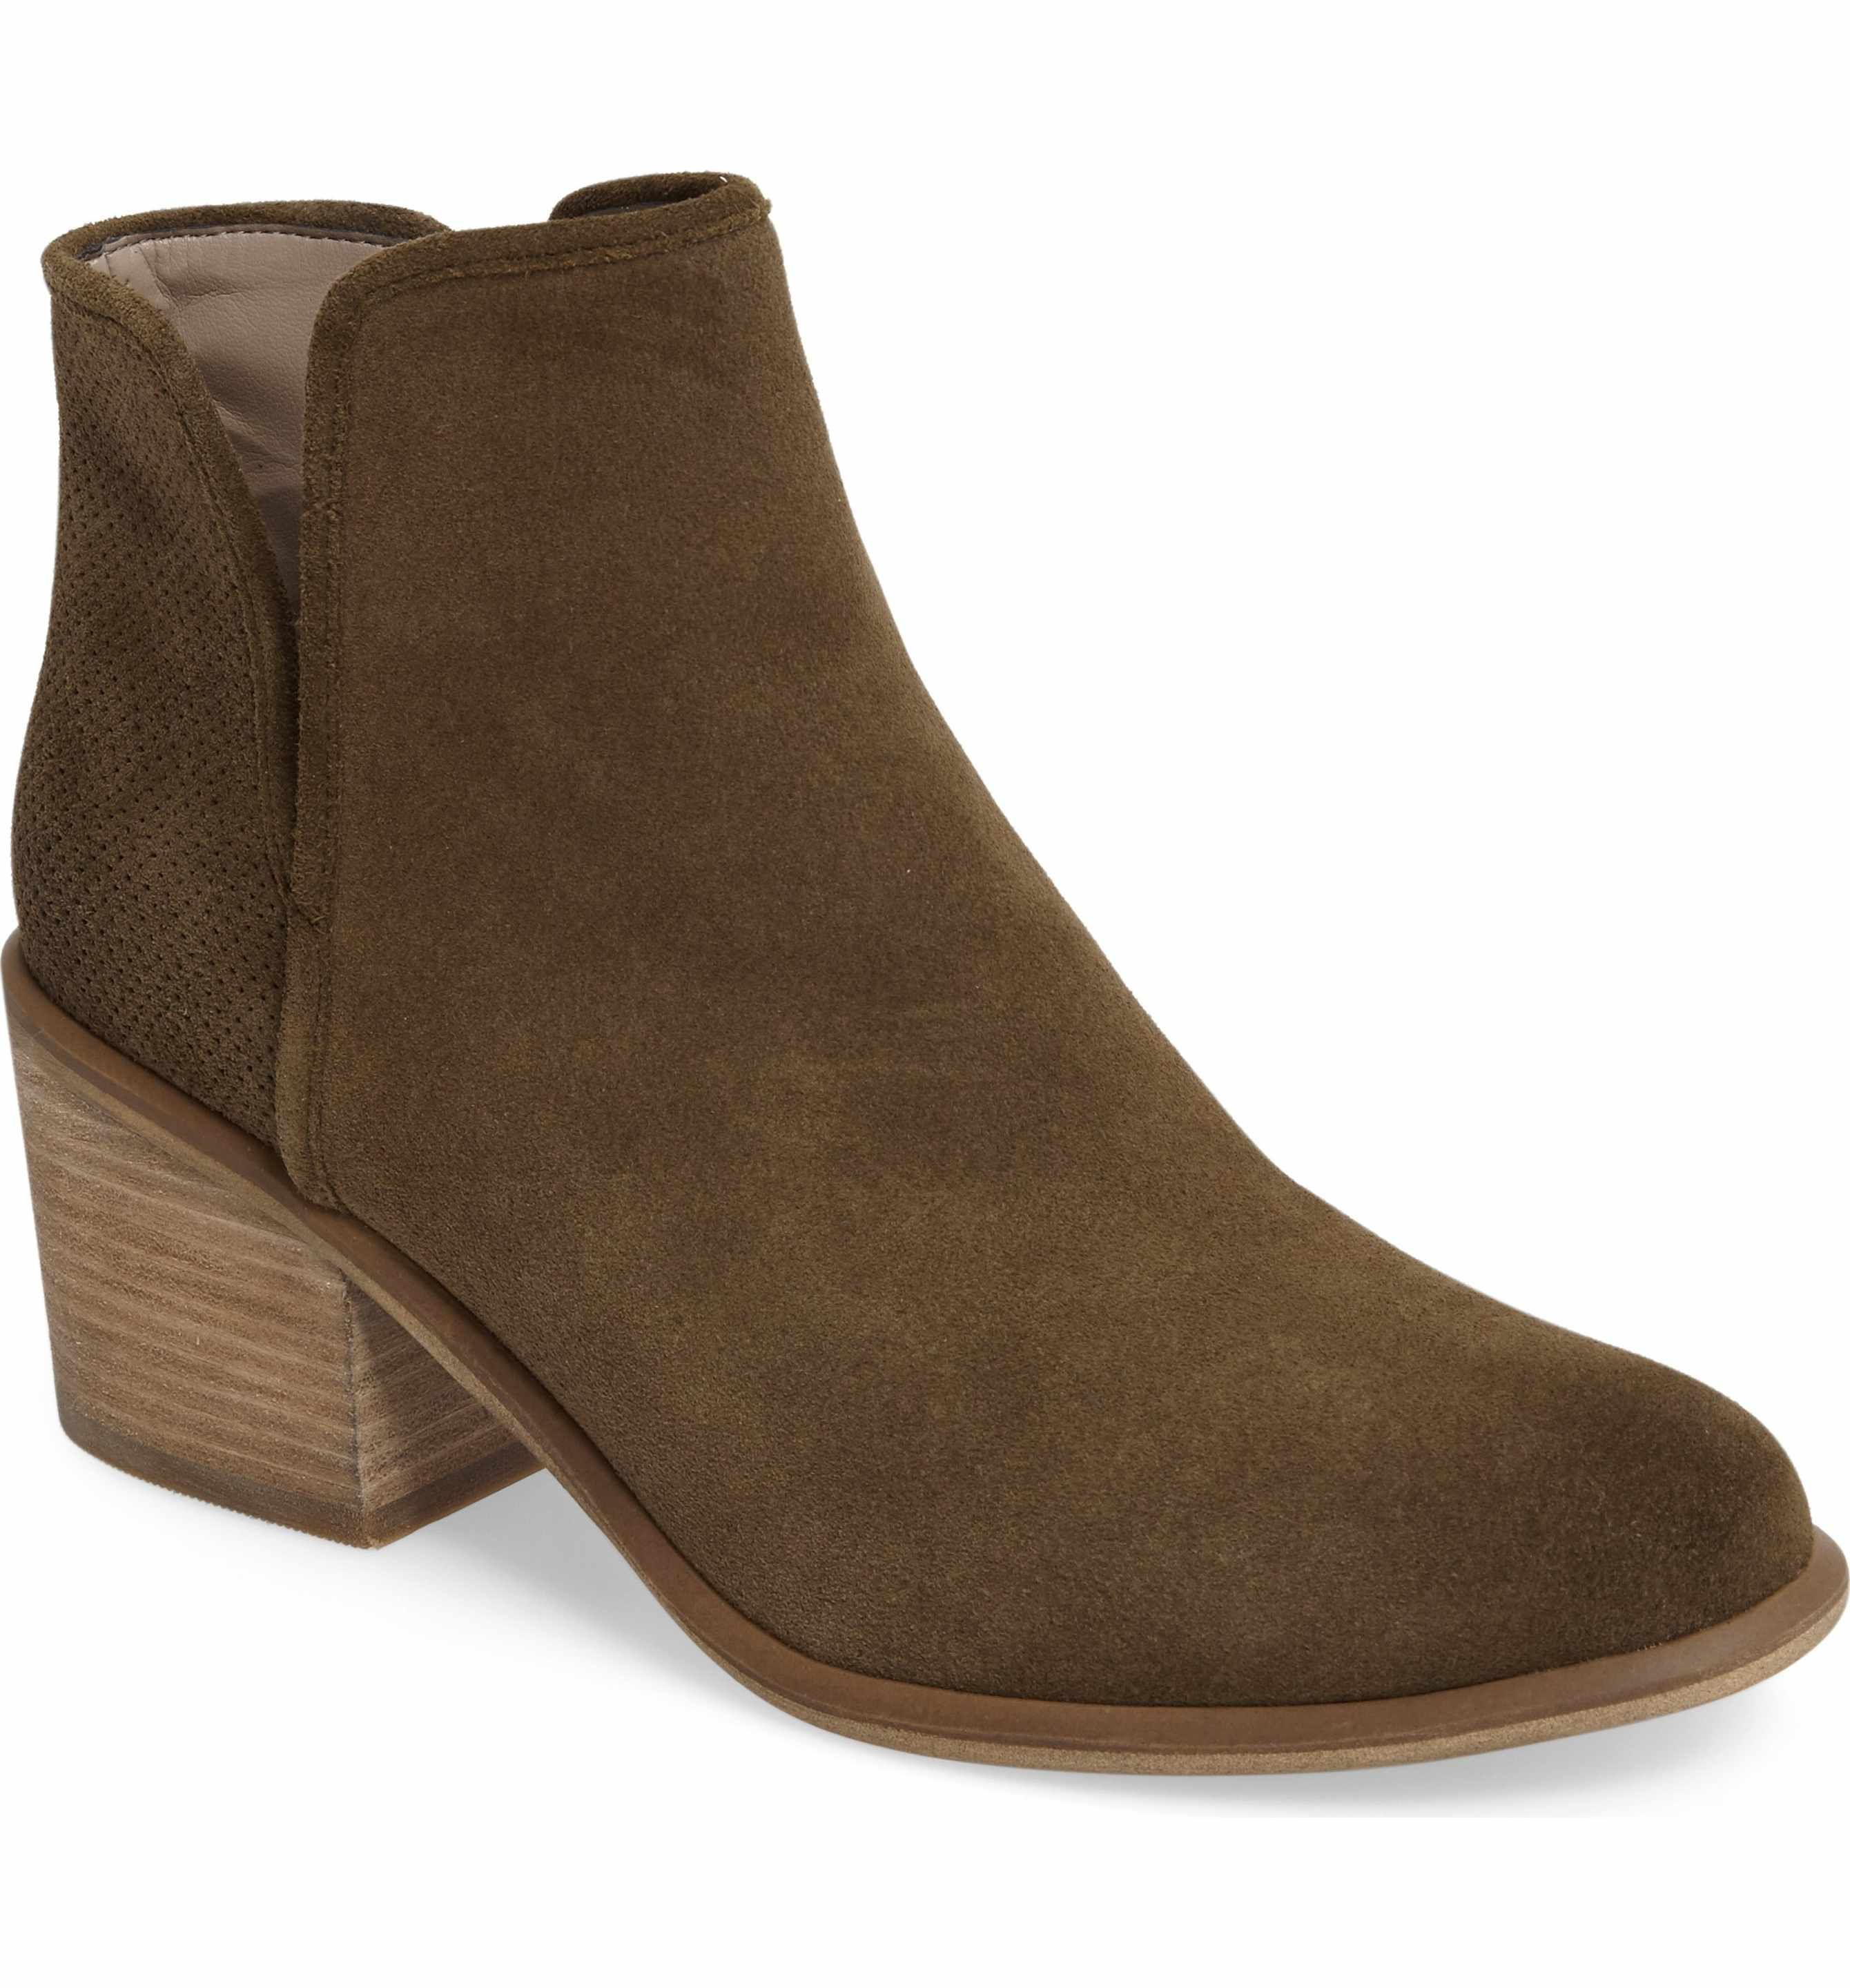 Journee Collection Padme ... Women's Wedge Ankle Boots YP9axc79